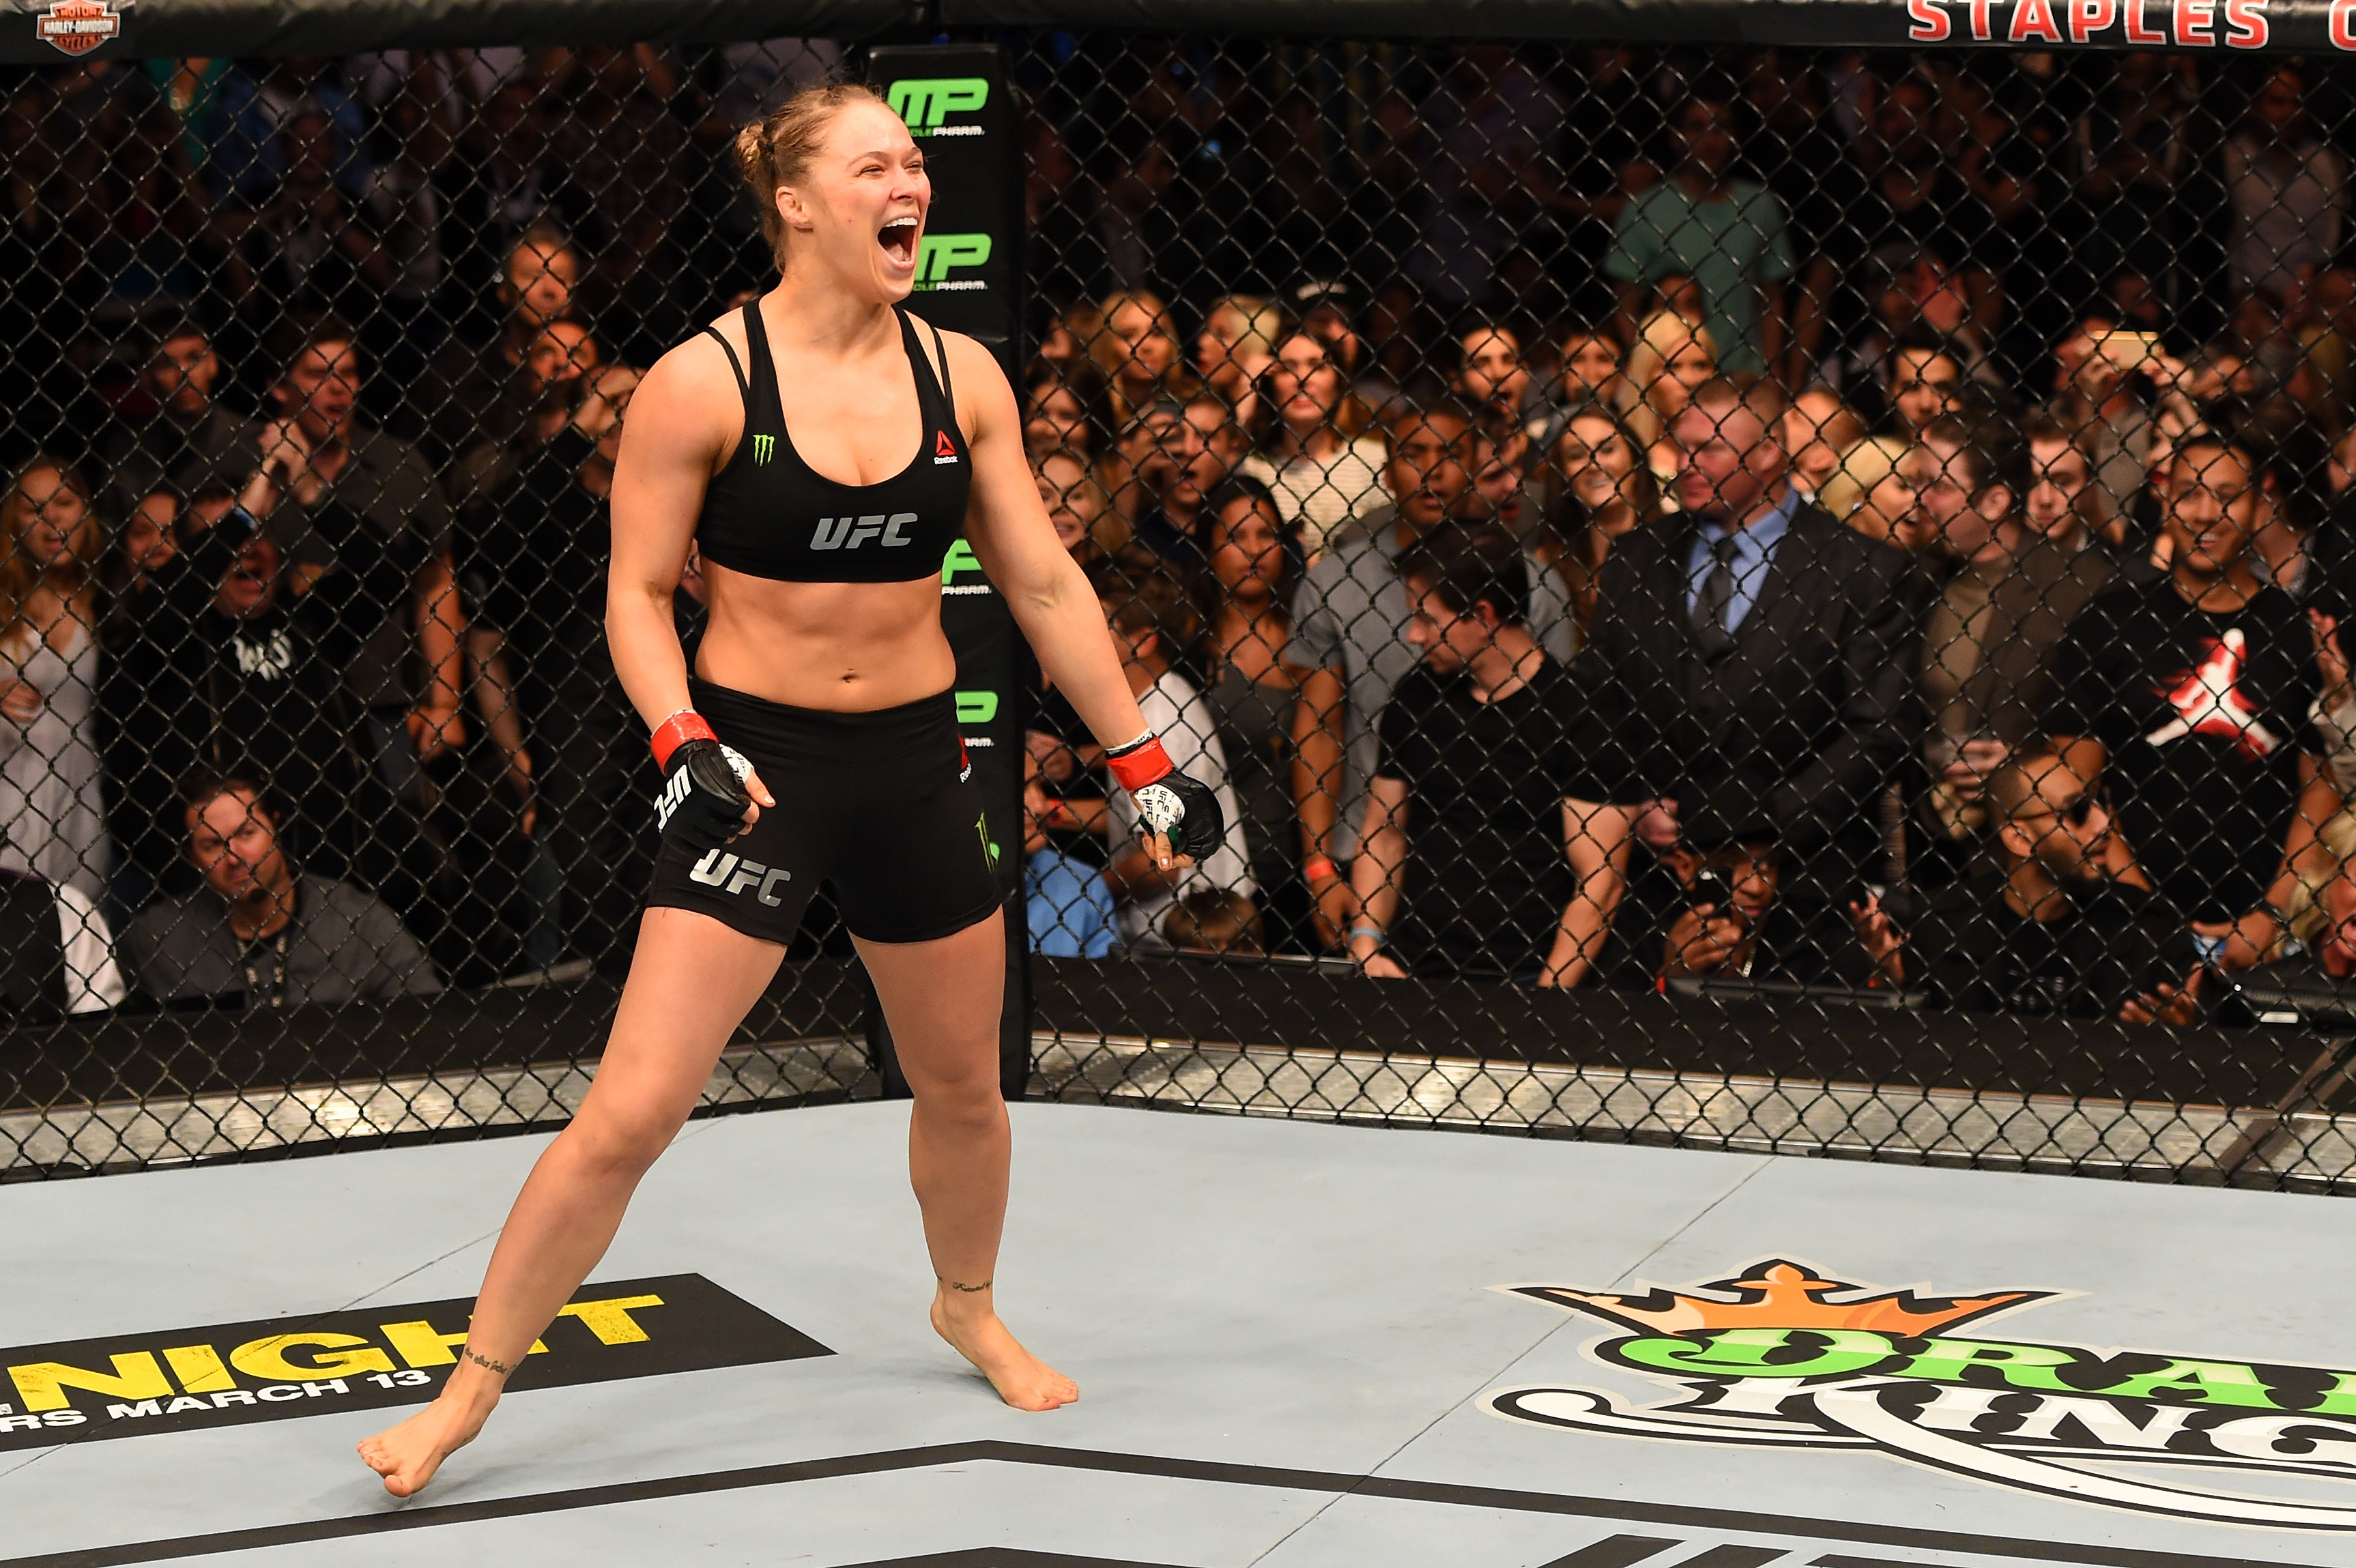 Rousey celebrates a victory over Cat Zingano in the bantamweight championship bout at UFC 184 in February in Los Angeles. Rousey is undefeated in her 12 professional fights, winning eleven in the first round.